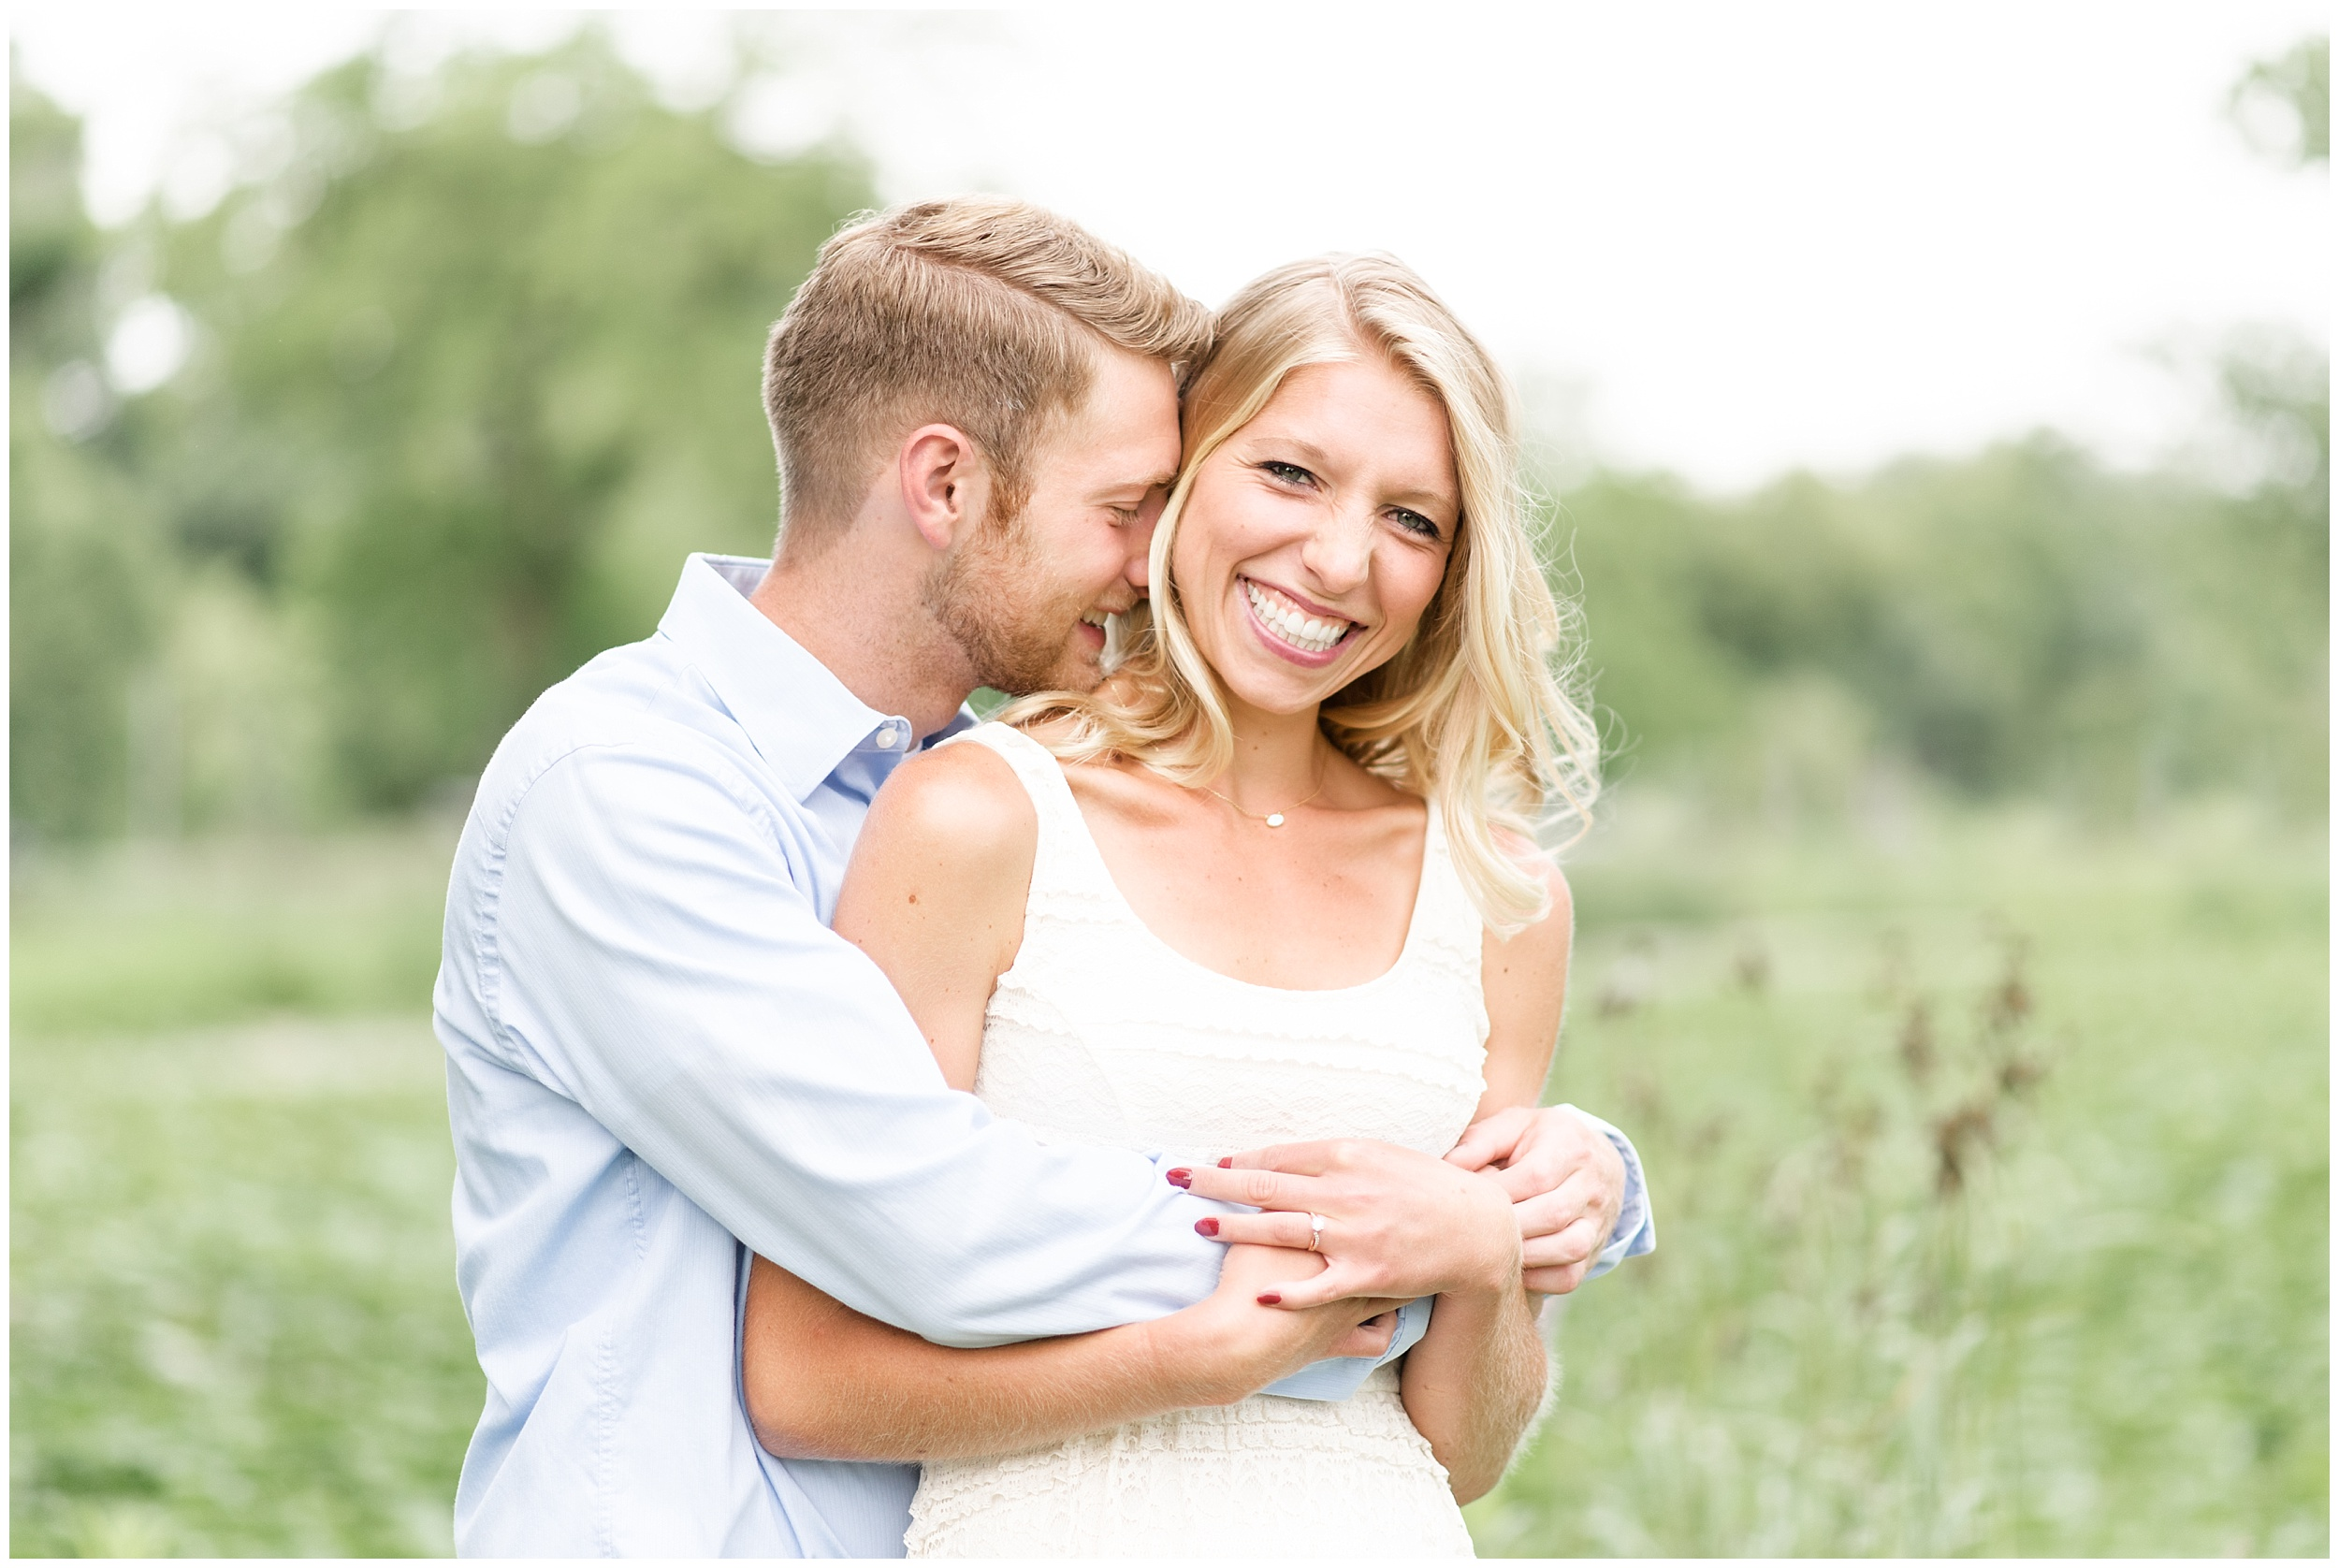 tenney-park-engagement-session-madison-wisconsin-bright-light-airy-wedding-photographer_0002.jpg